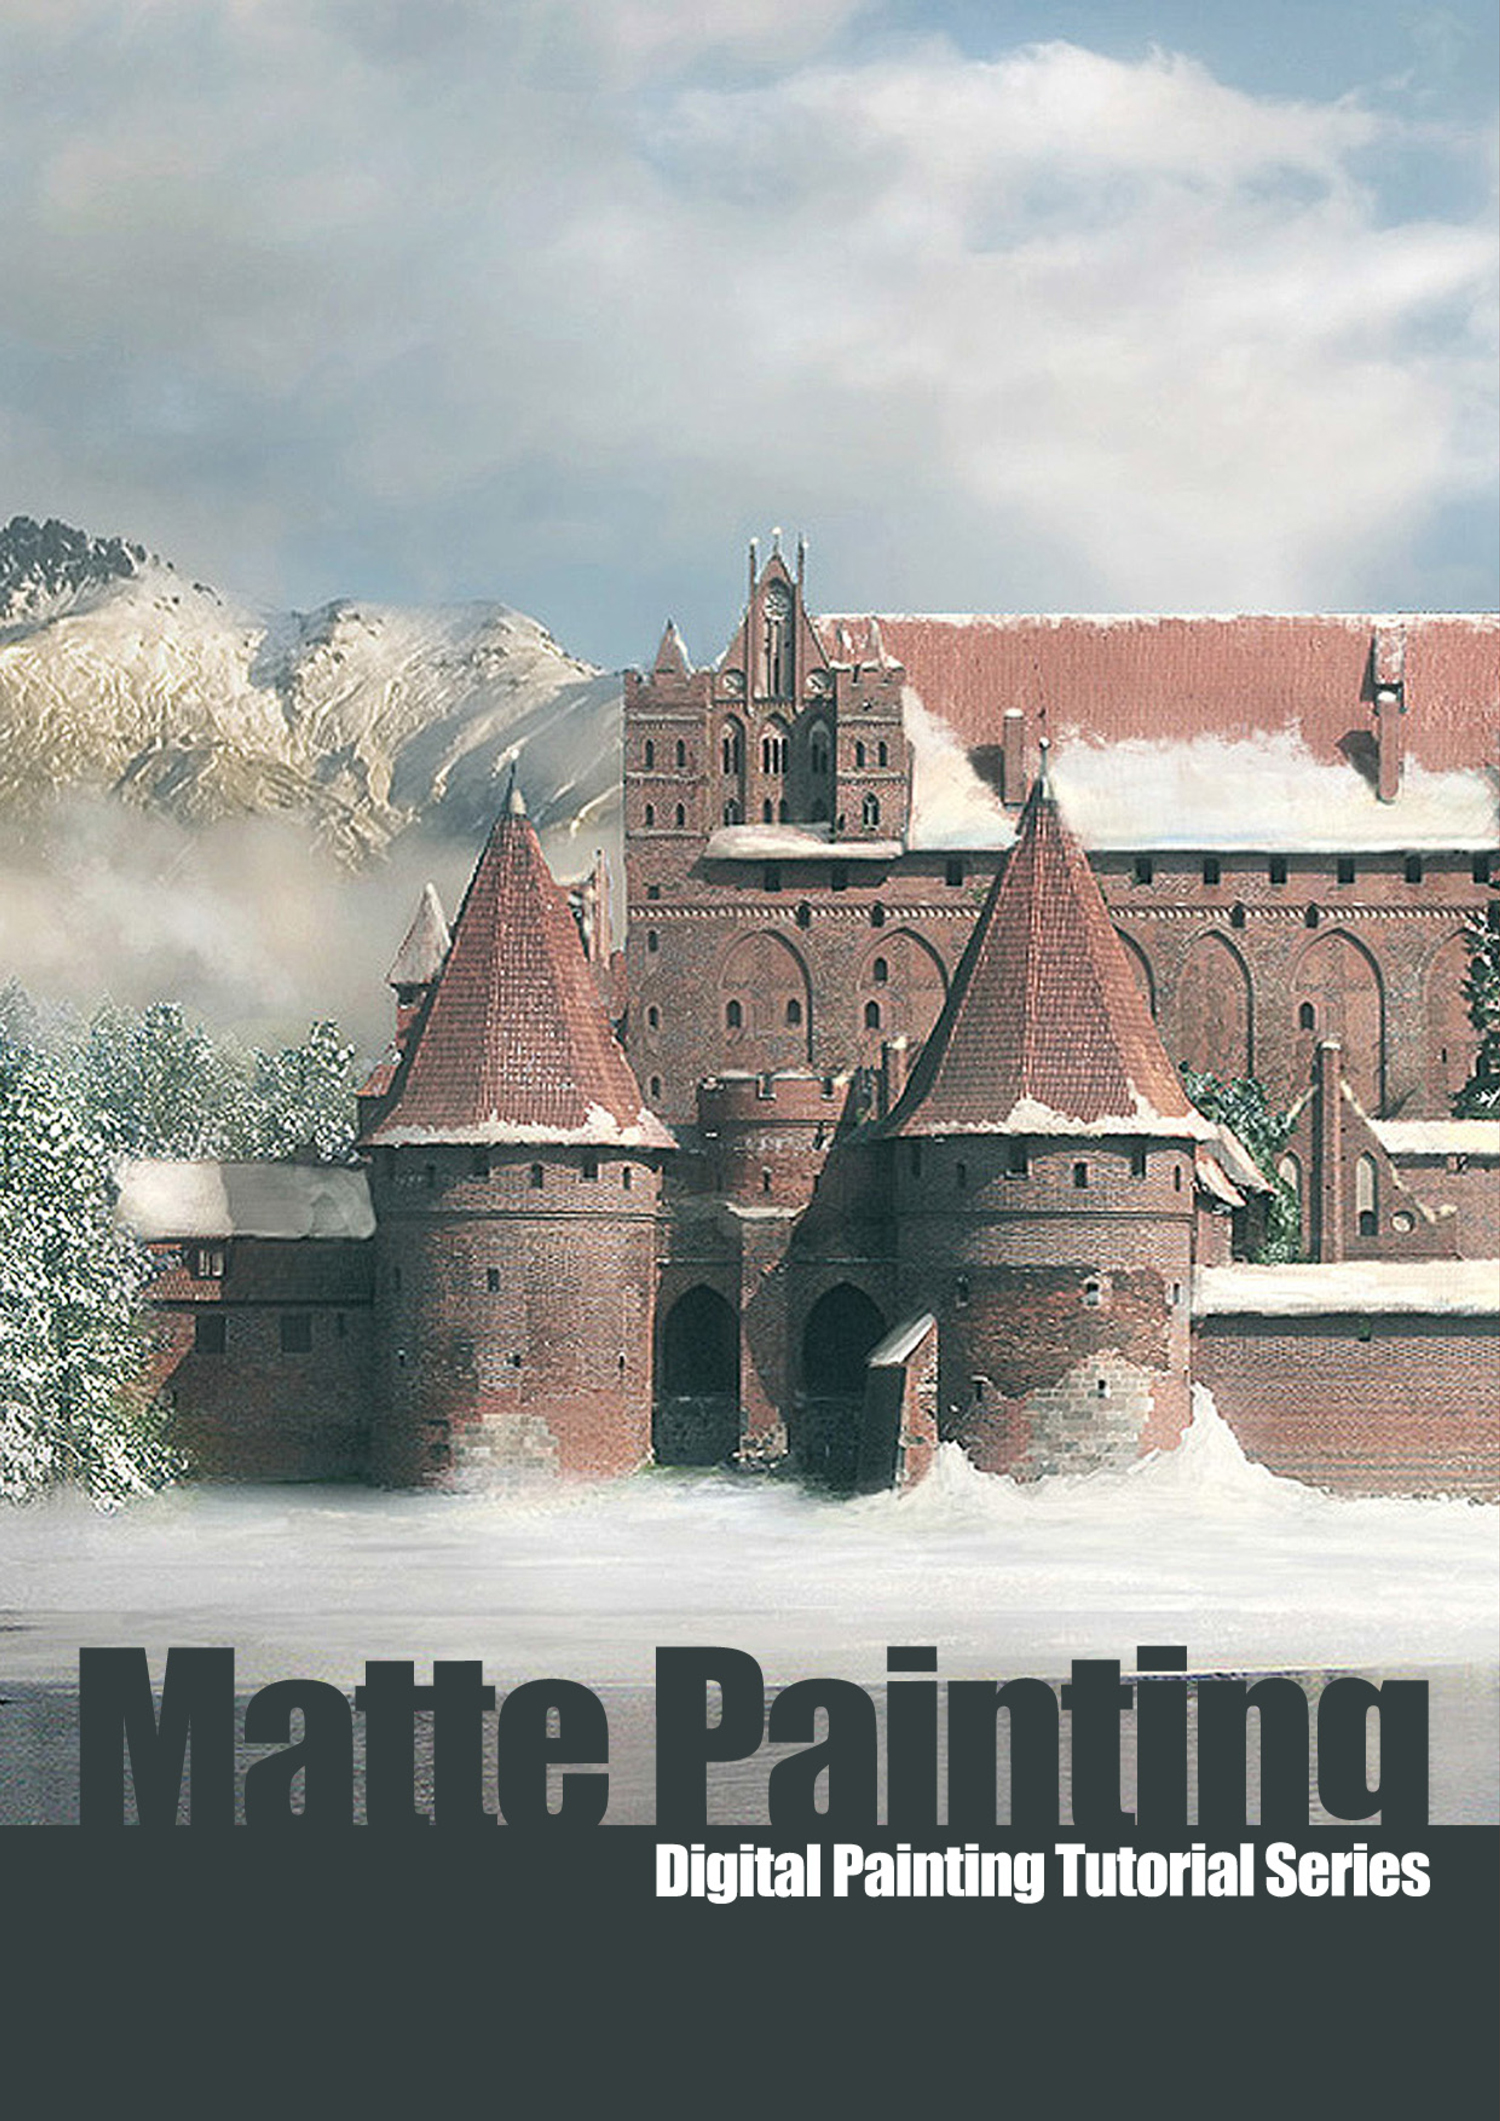 Matte painting digital painting tutorial download only matte painting digital painting tutorial download only baditri Choice Image